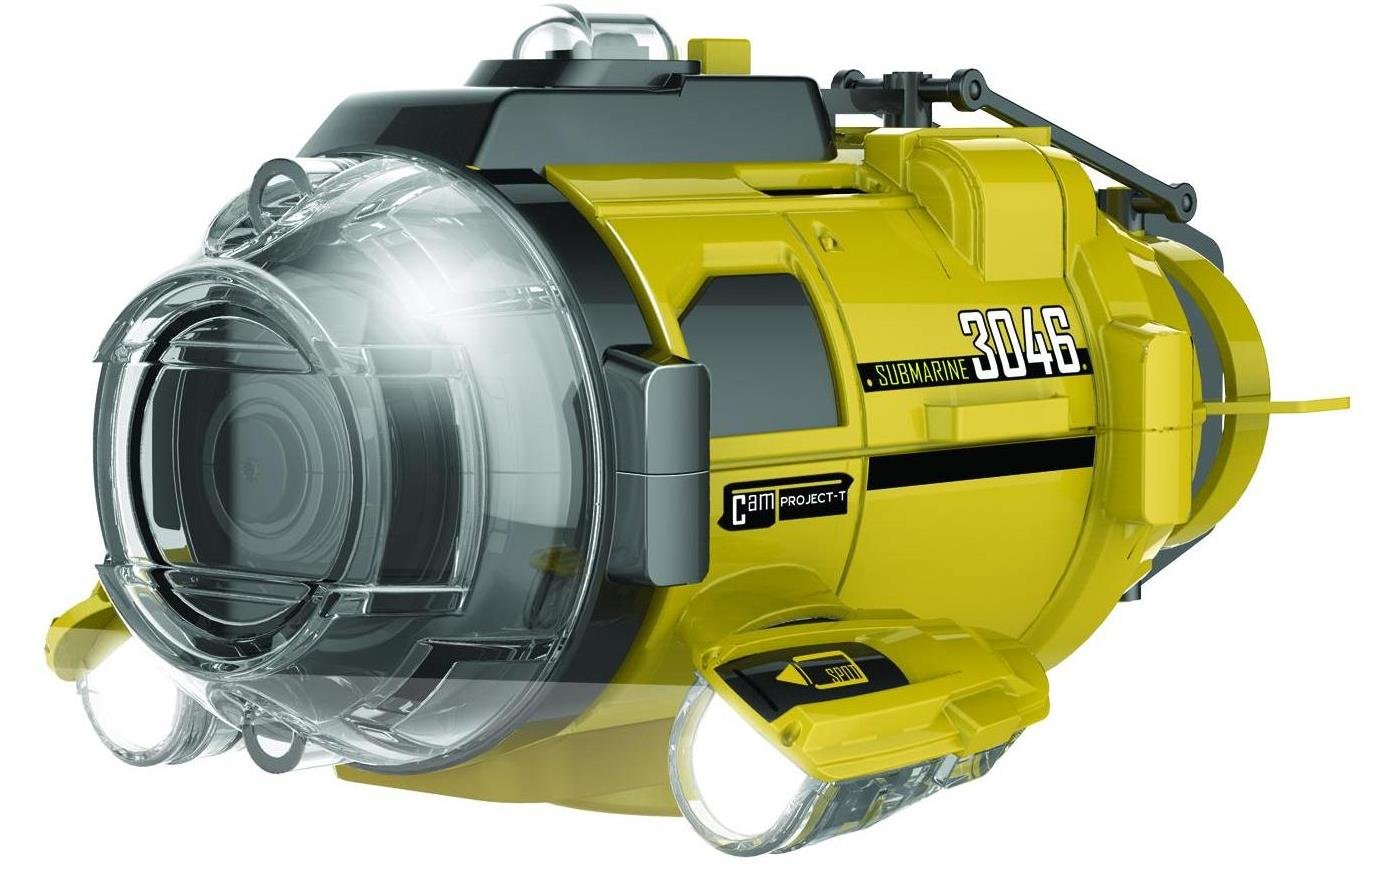 SilverLit Spy Cam Aqua Submarine Underwater Drone Review